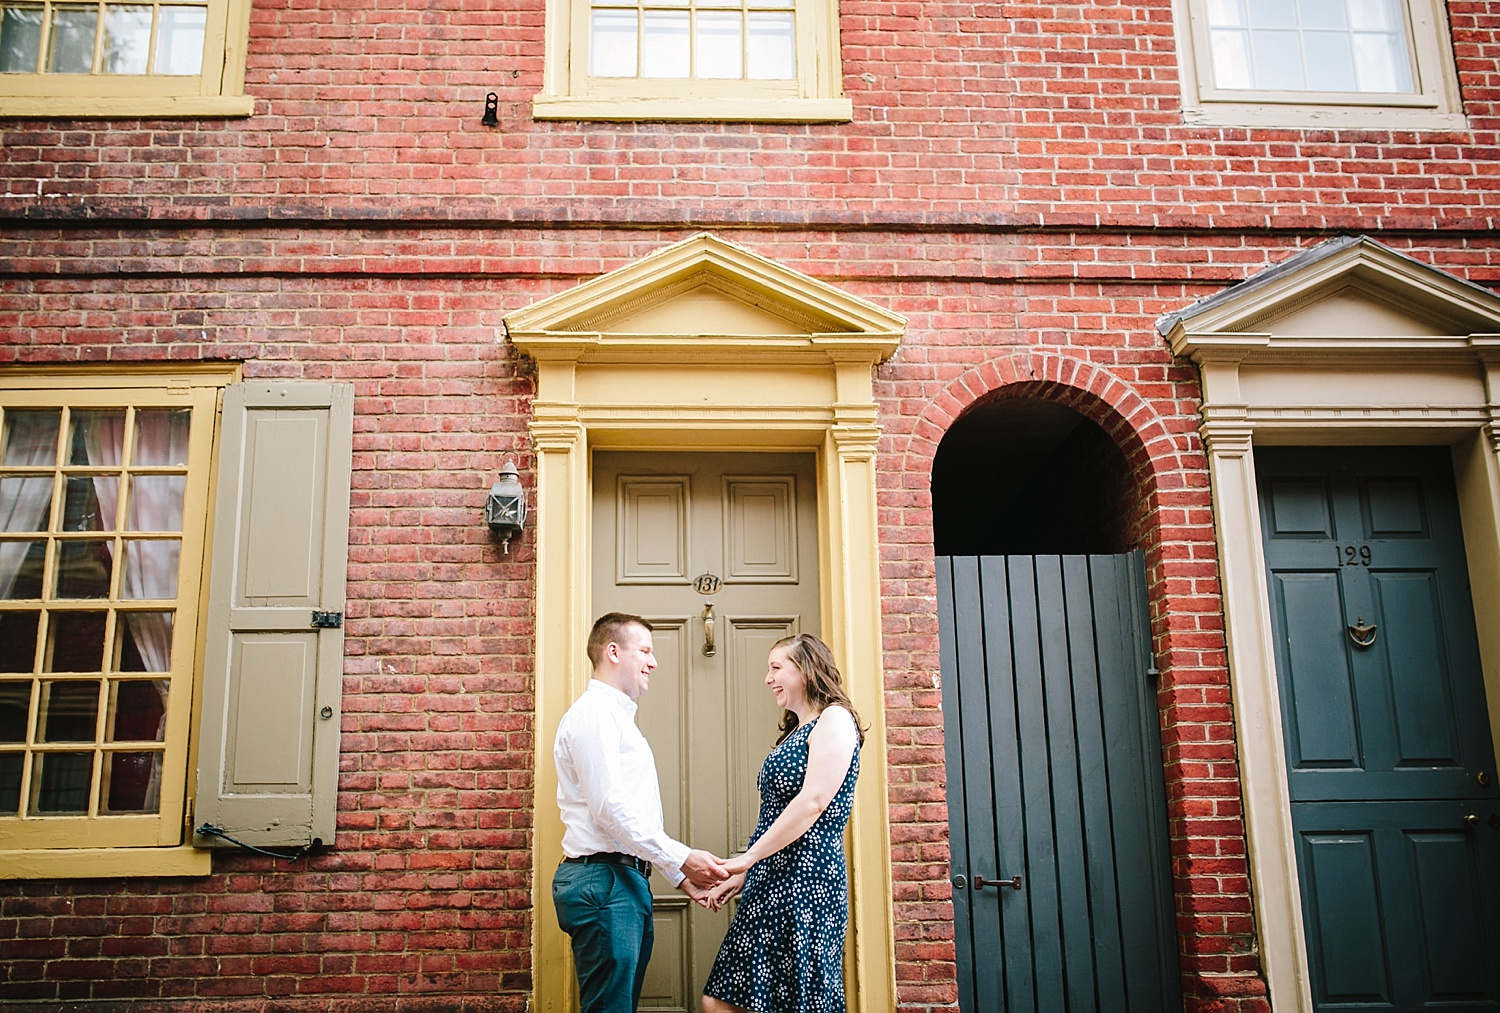 lizandbrandon_oldcity_philadelphia_elfrethsalley_engagement_session_image009.jpg